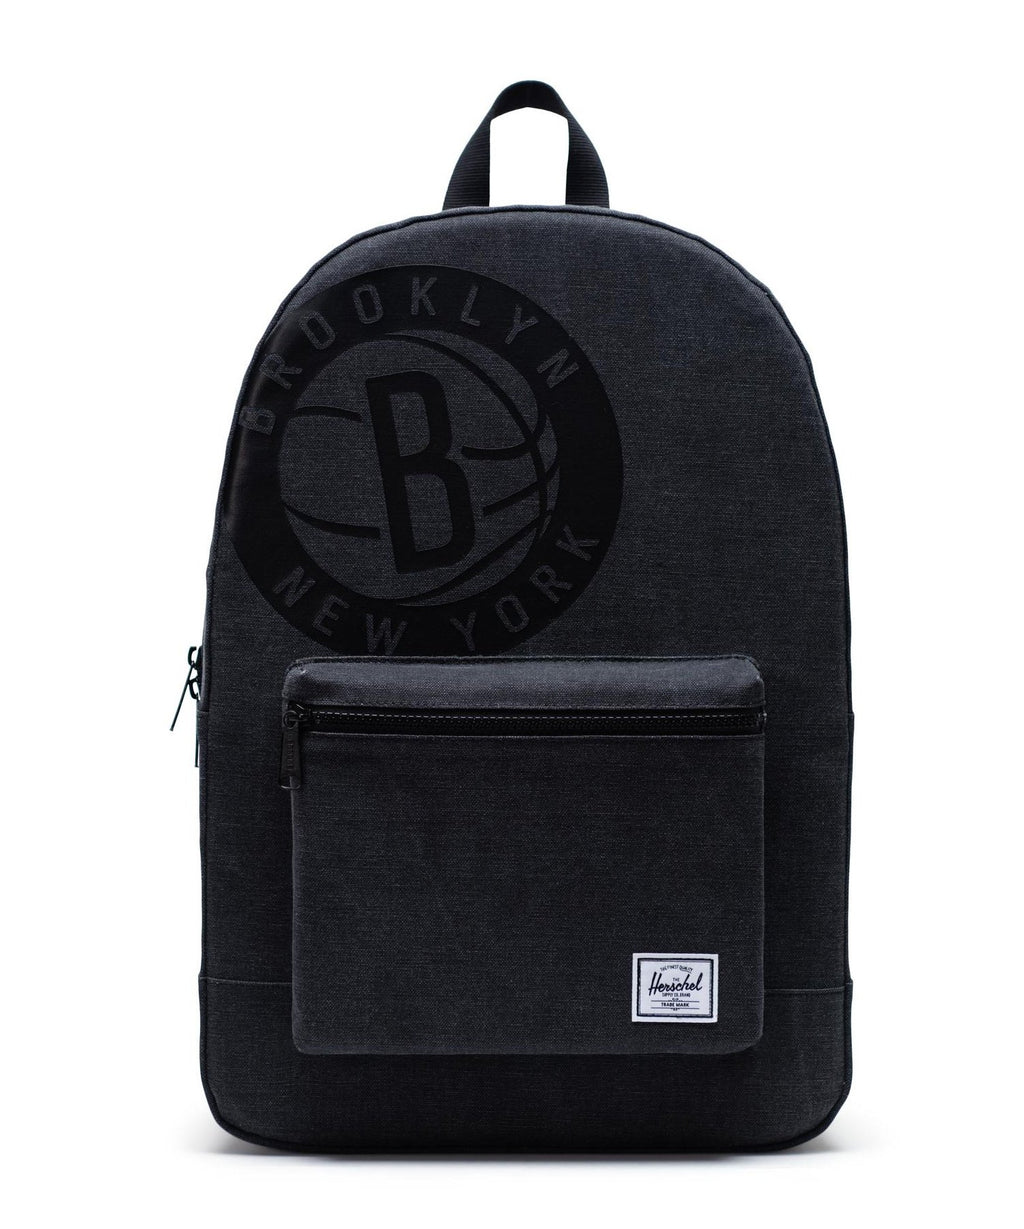 Brooklyn Nets Daypack Backpack Black